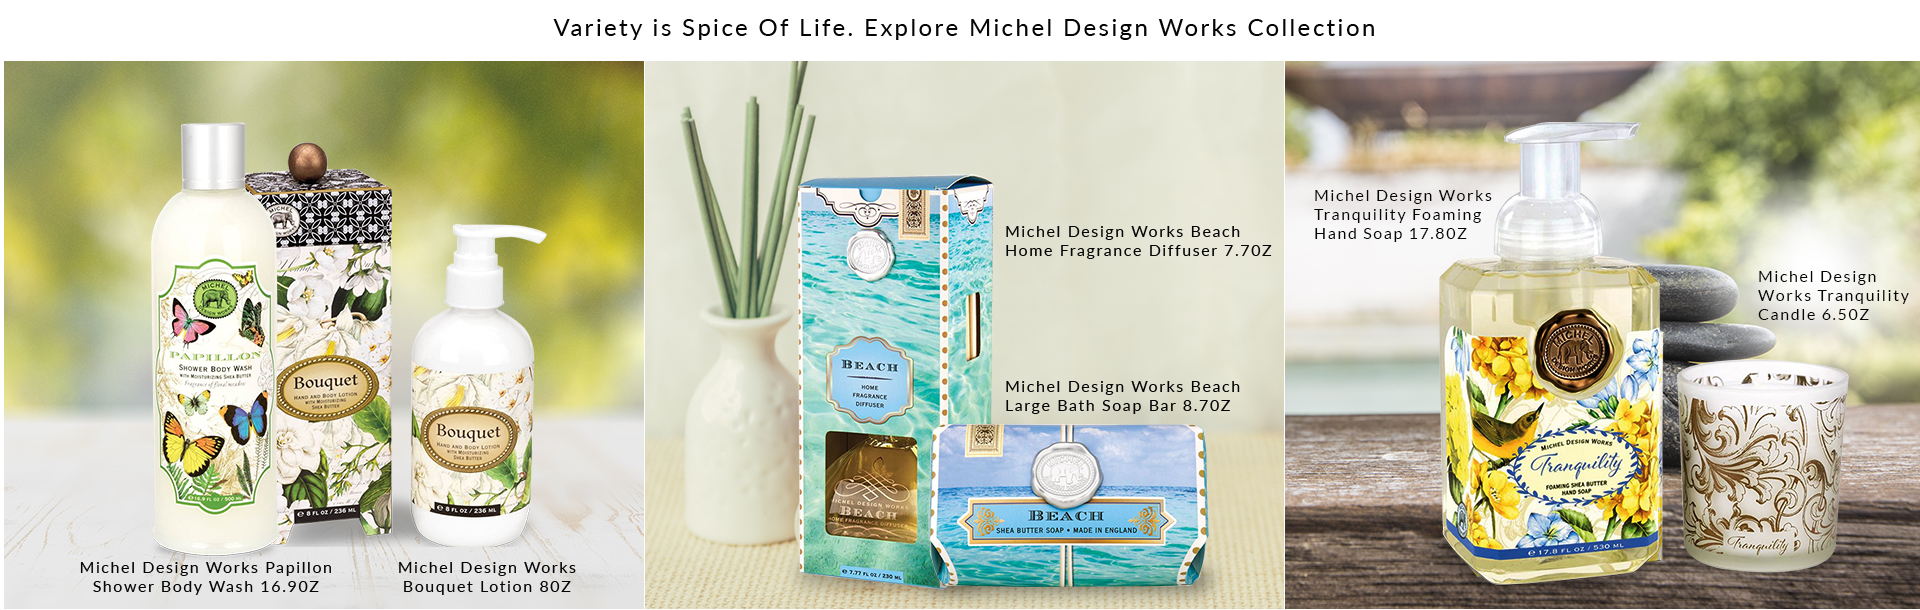 Michel Design Works Collection